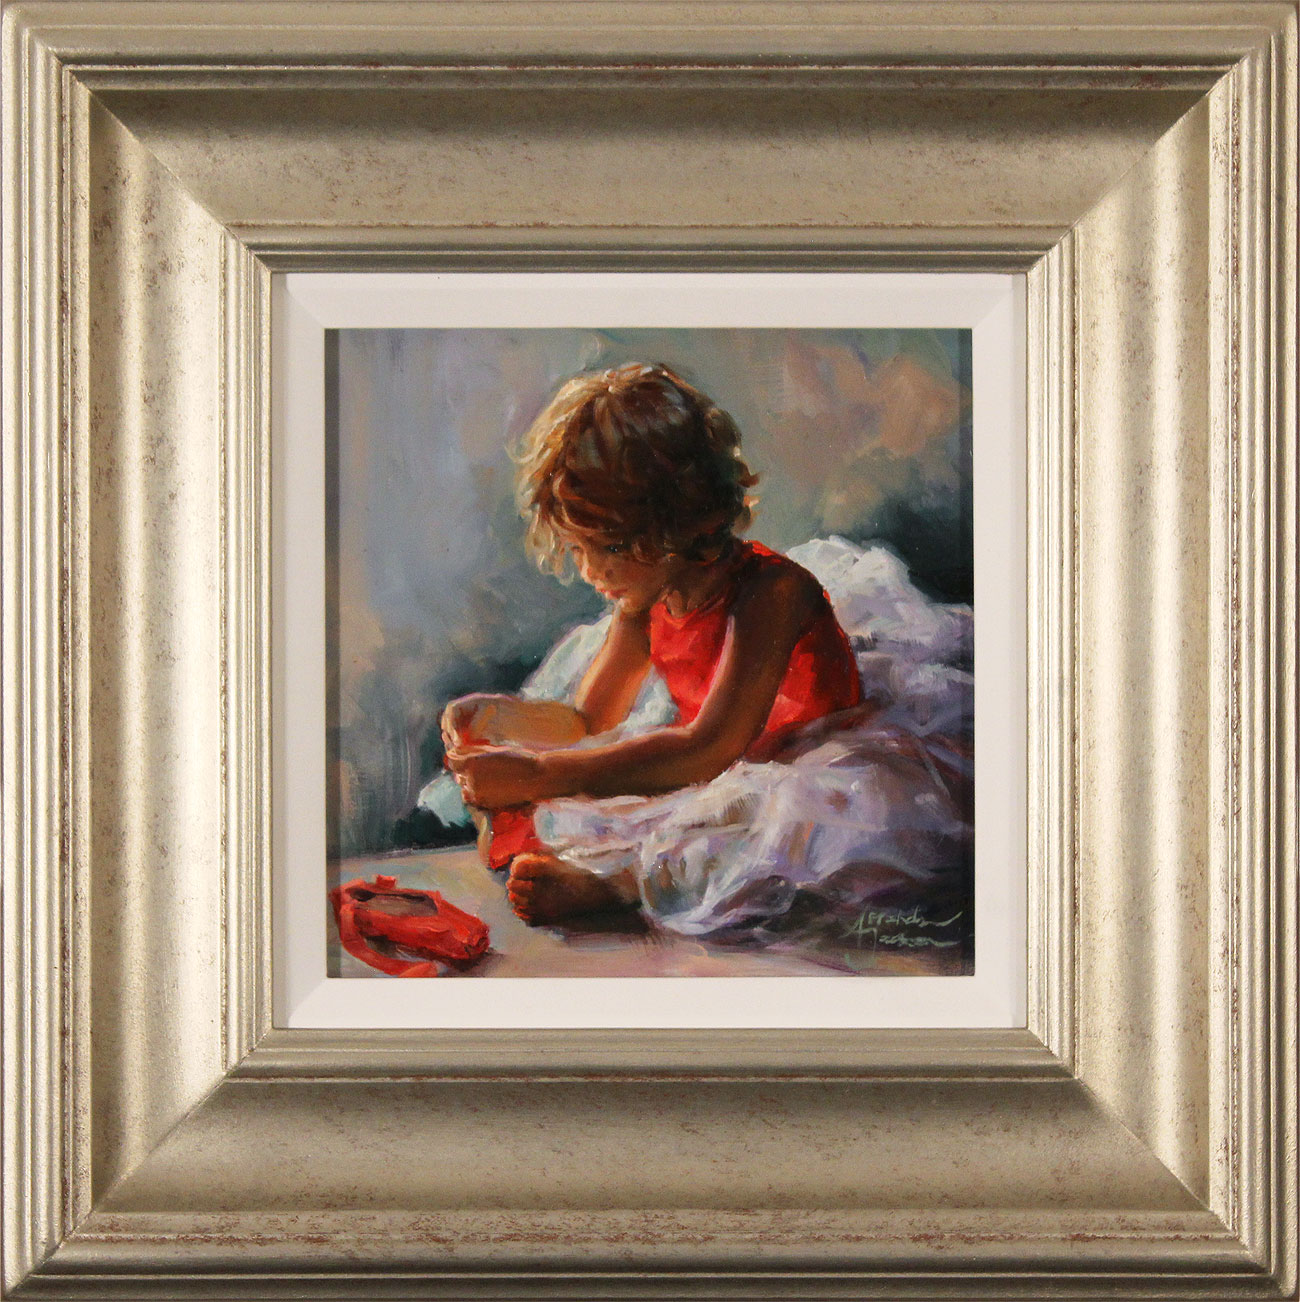 Amanda Jackson, Original oil painting on panel, Ruby Slippers. Click to enlarge